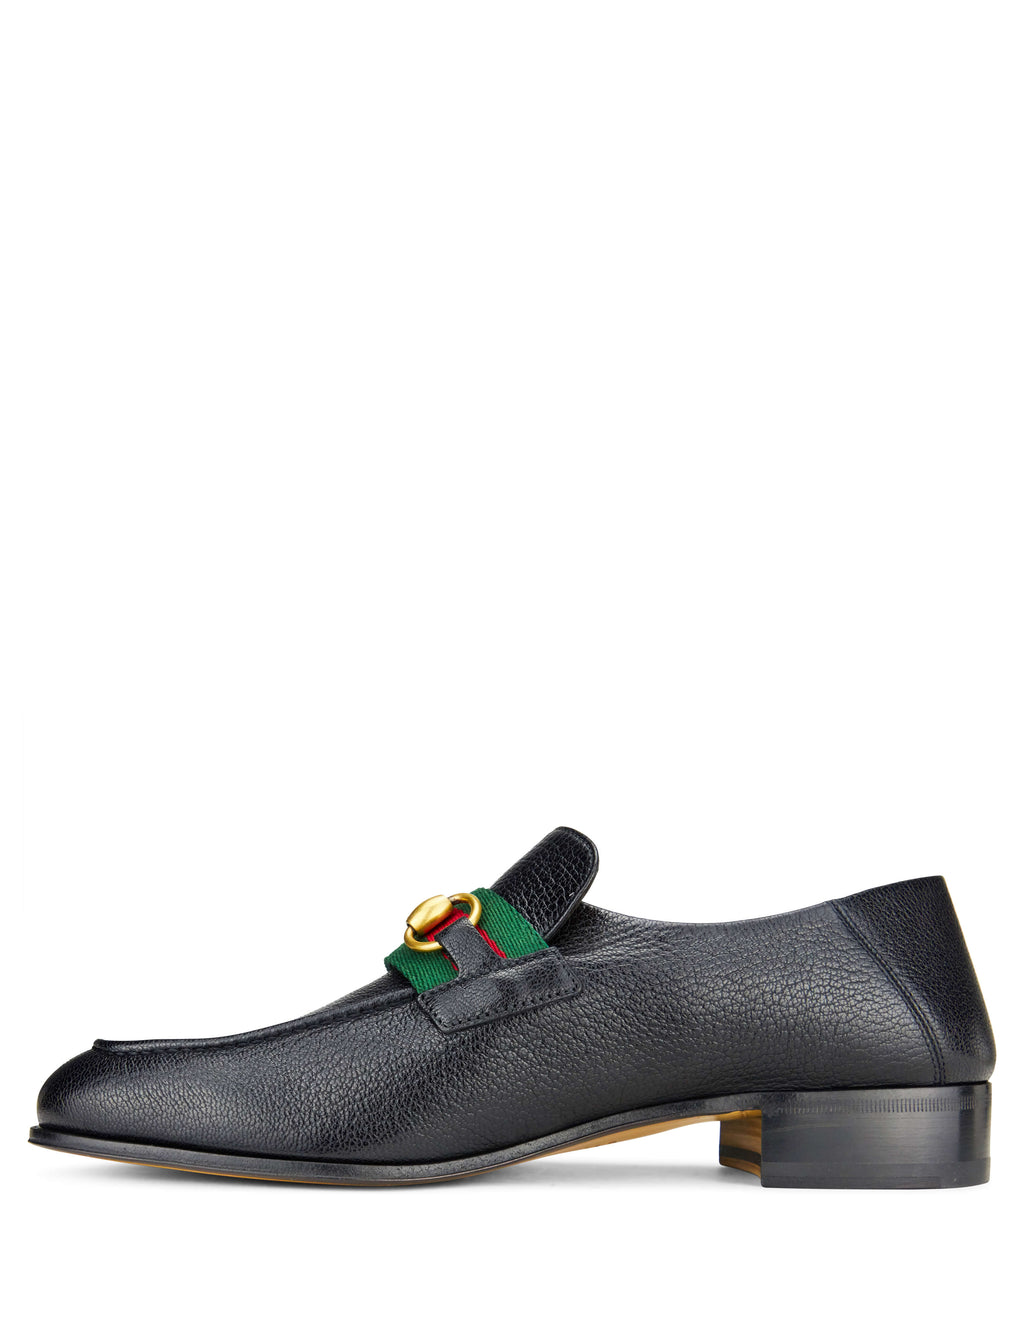 Gucci Men's Giulio Fashion Black Leather Horsebit Loafers 5452770YL101060